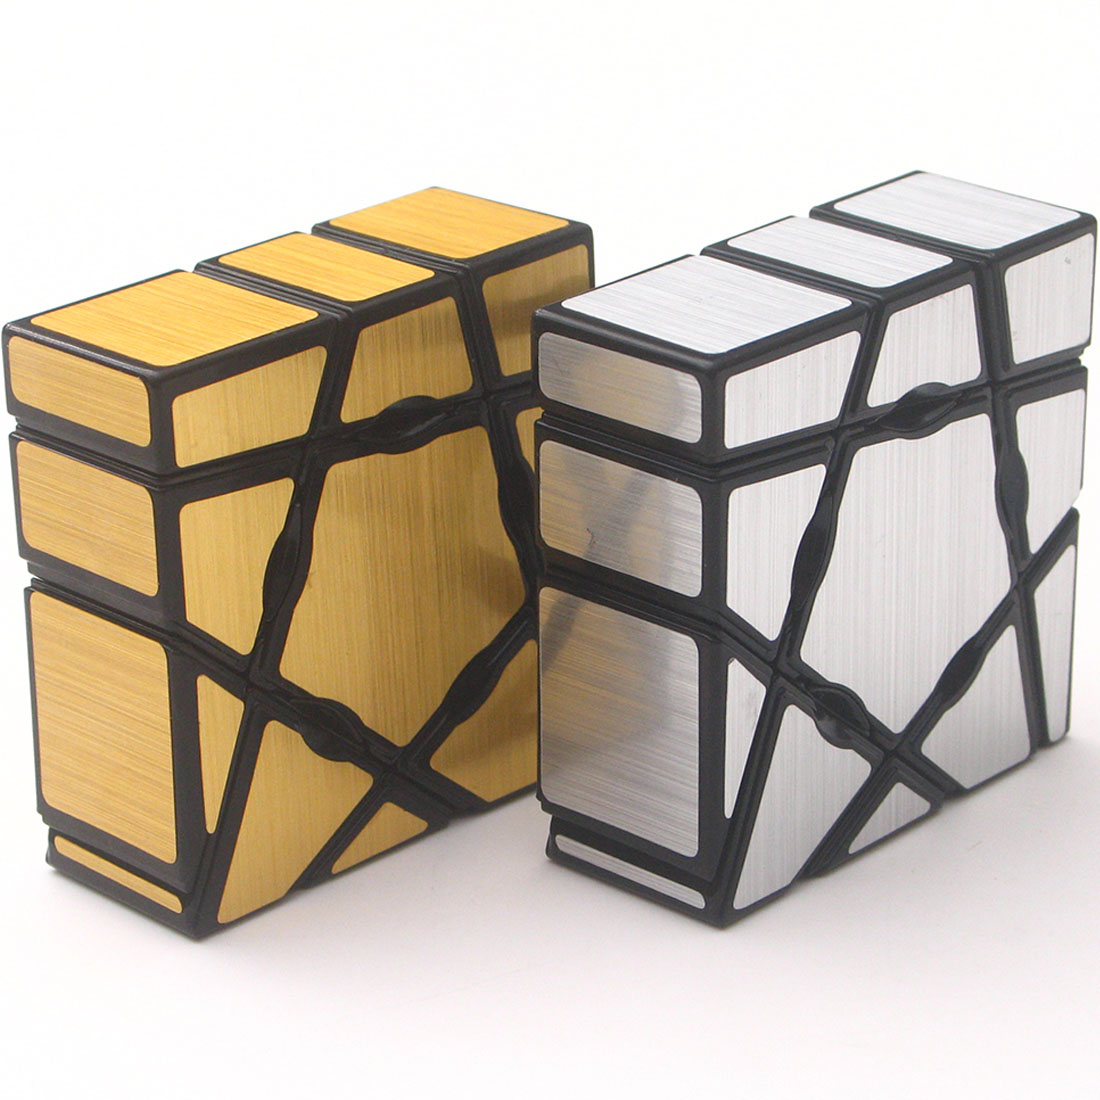 2018 New Abnormity 1x1 Magic Cube Funny Creative Puzzle Toys 1x3x3 Rubiks Cube puzzles antistress cube anti-stress toy cubo ZJD